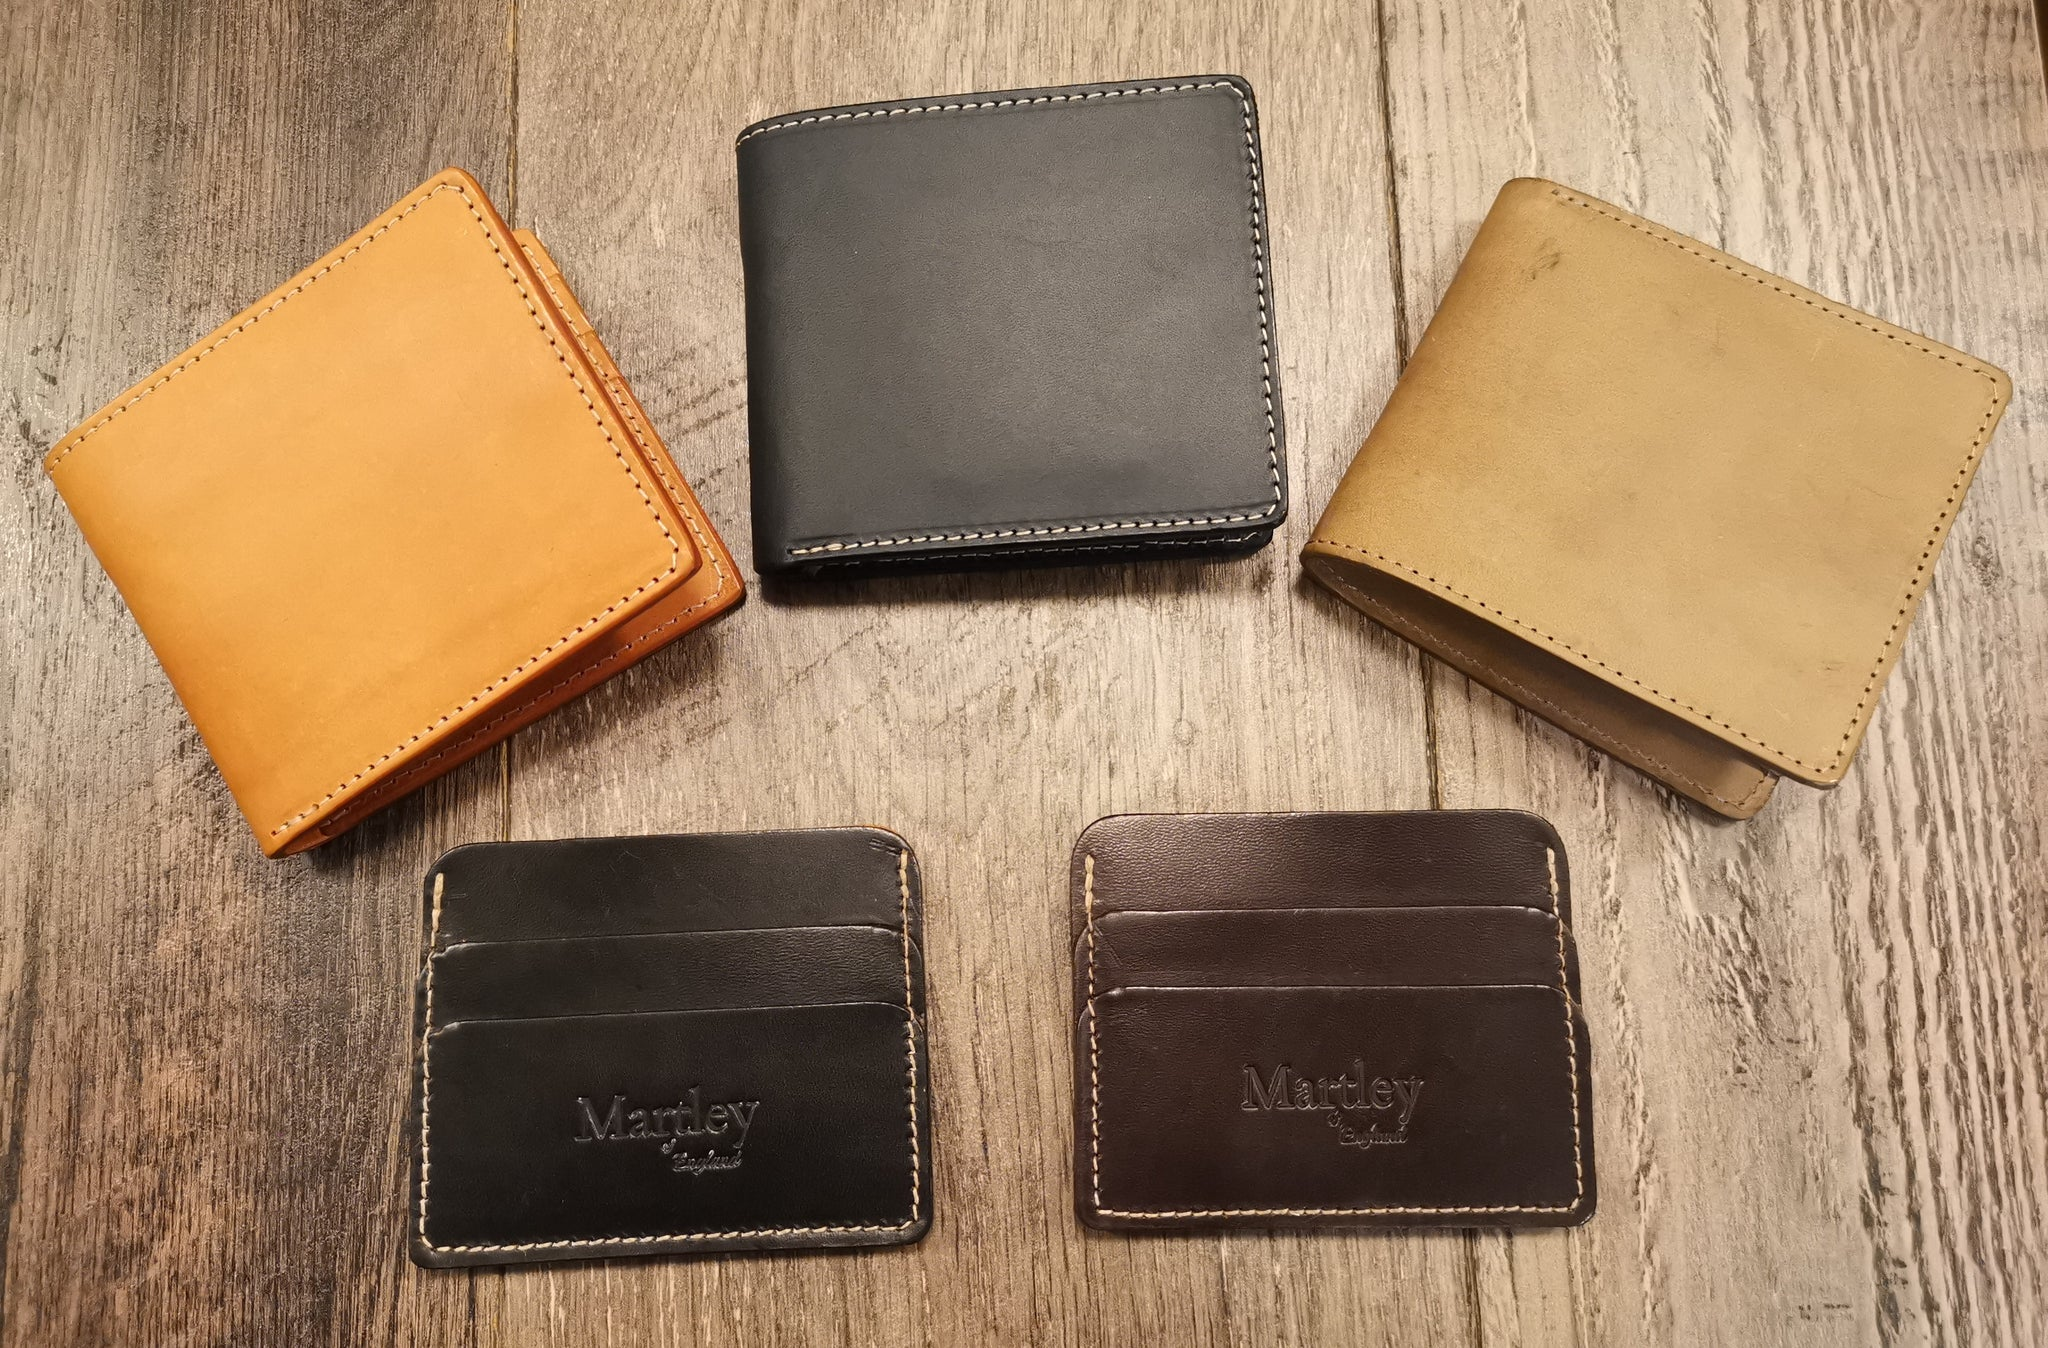 Martley Leather Wallets